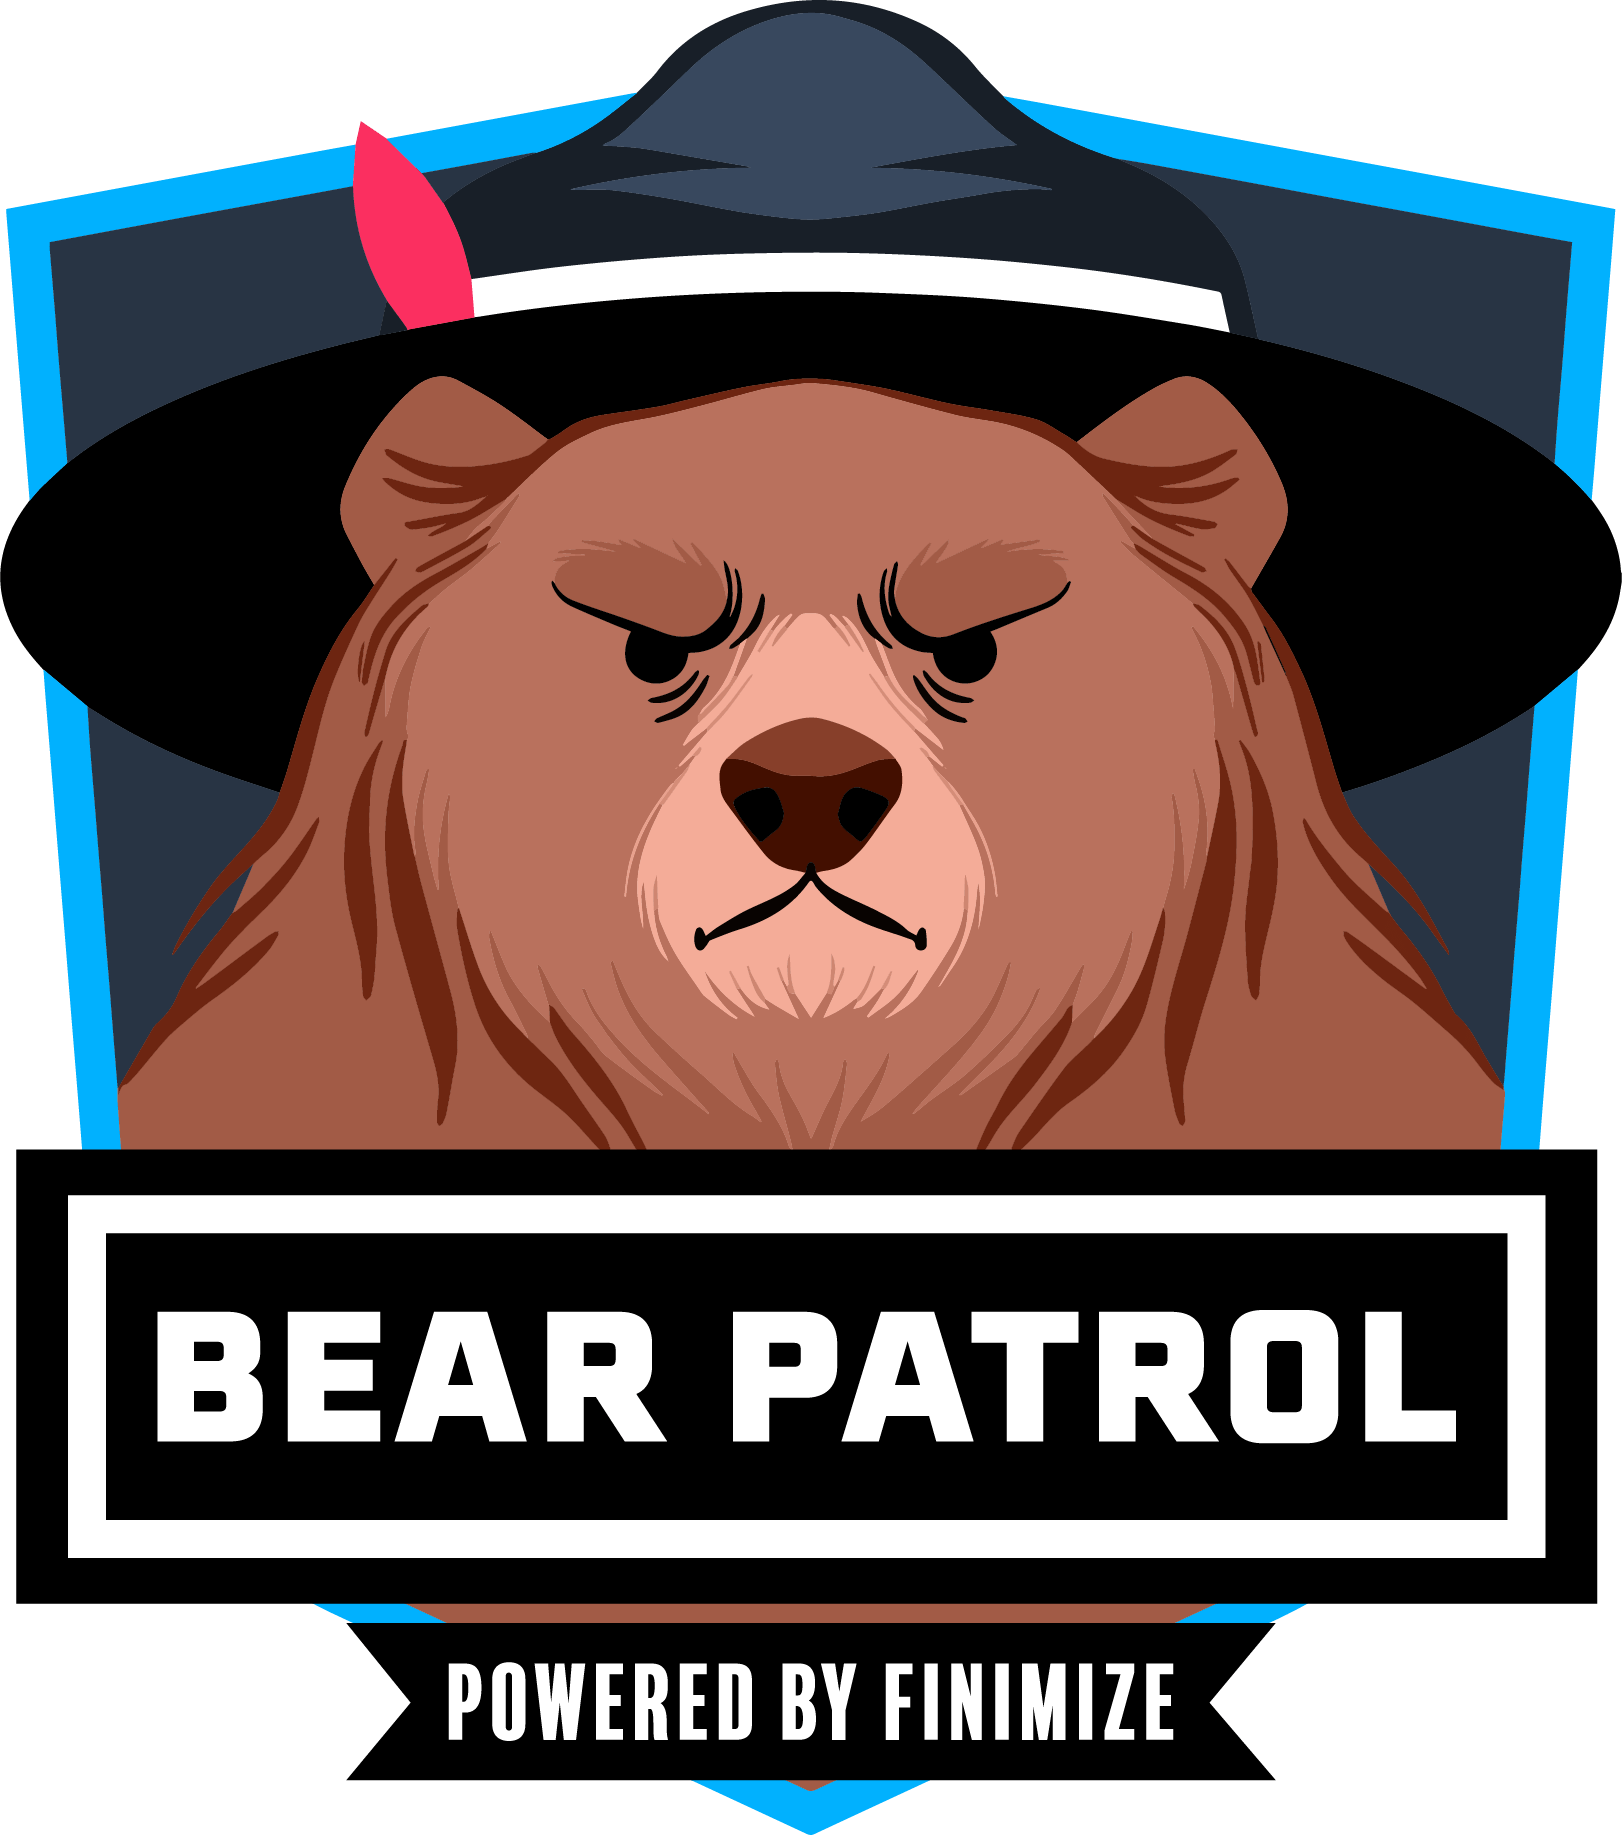 Bear Patrol by Finimize